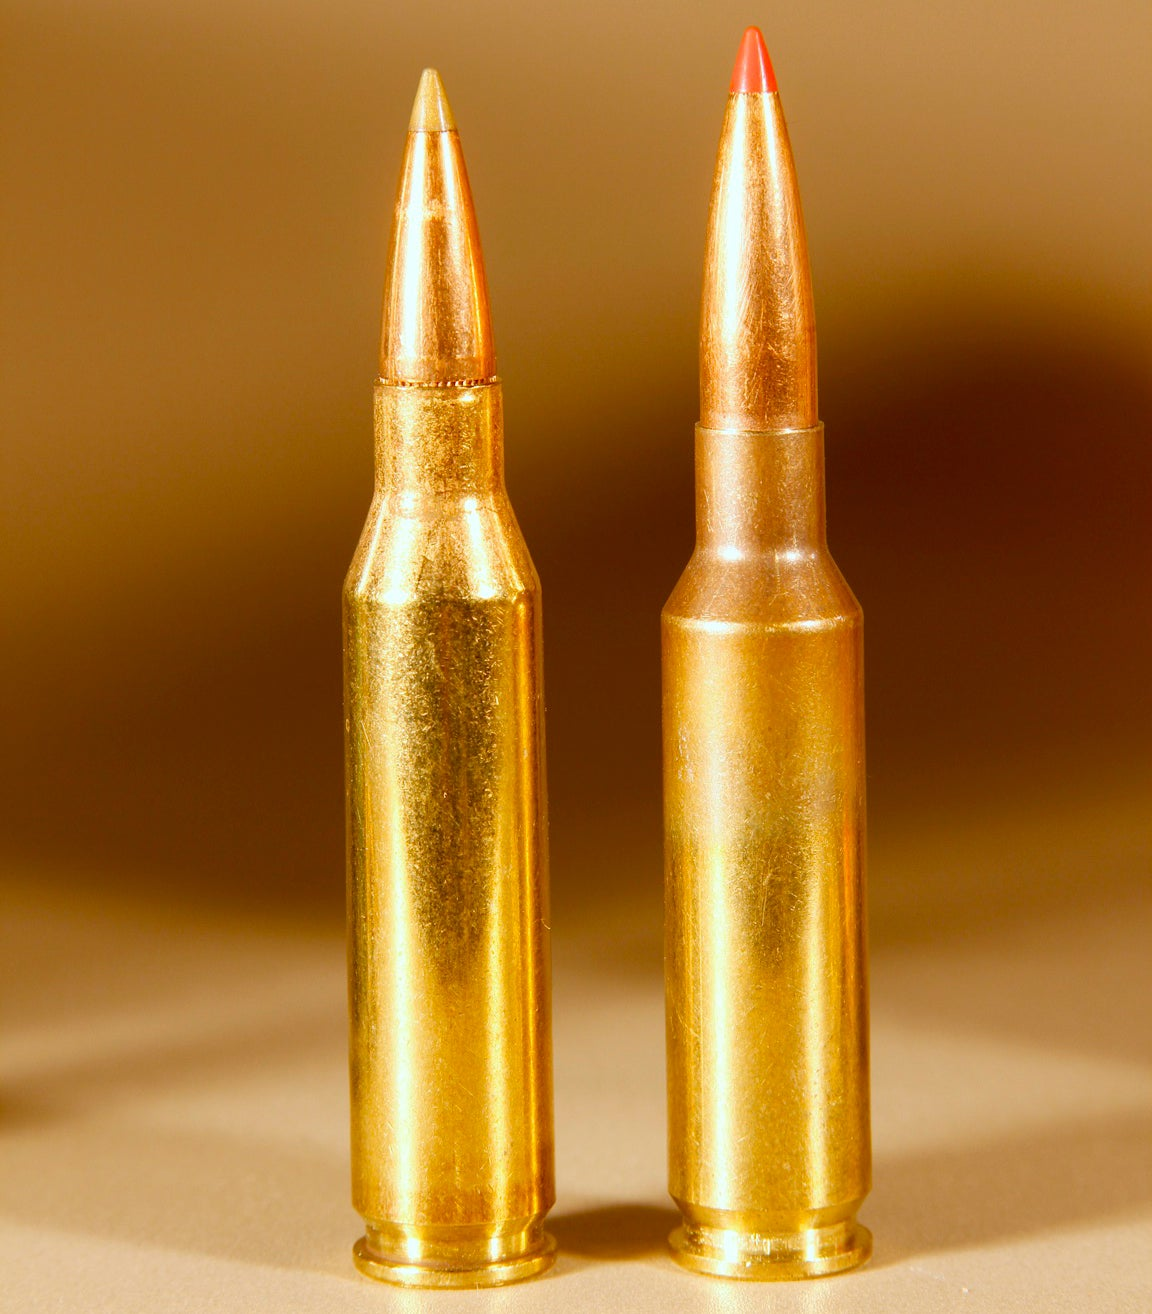 A side-by-side of rifle cartrdiges.